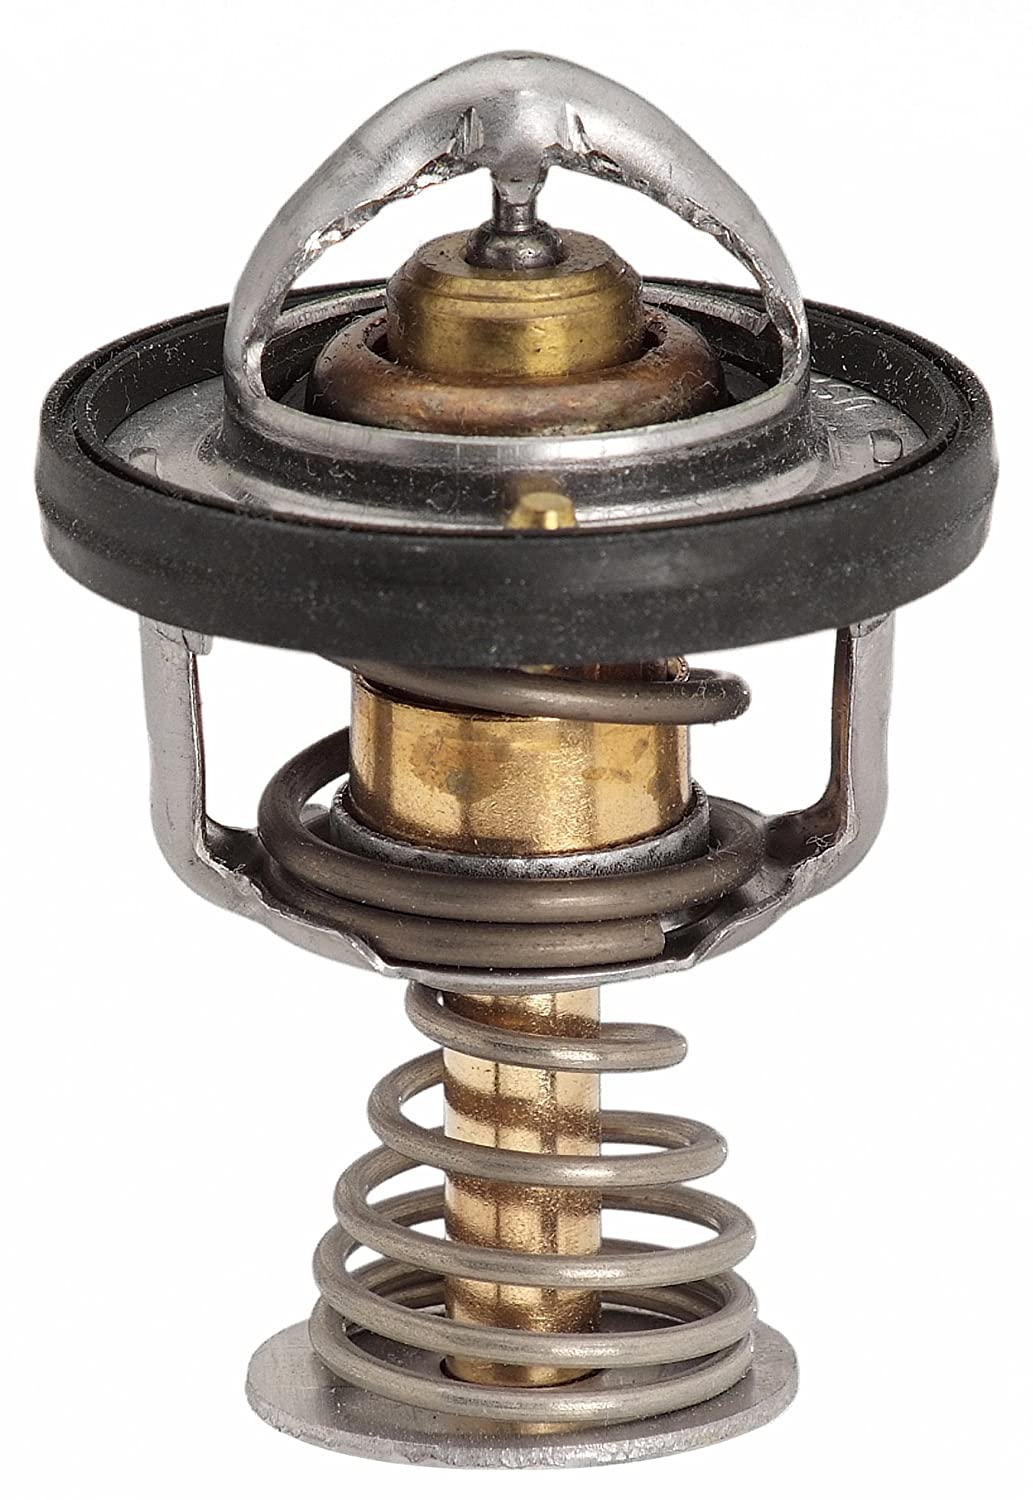 Stant 48808 XACTStat 185 Degrees Fahrenheit Thermostat